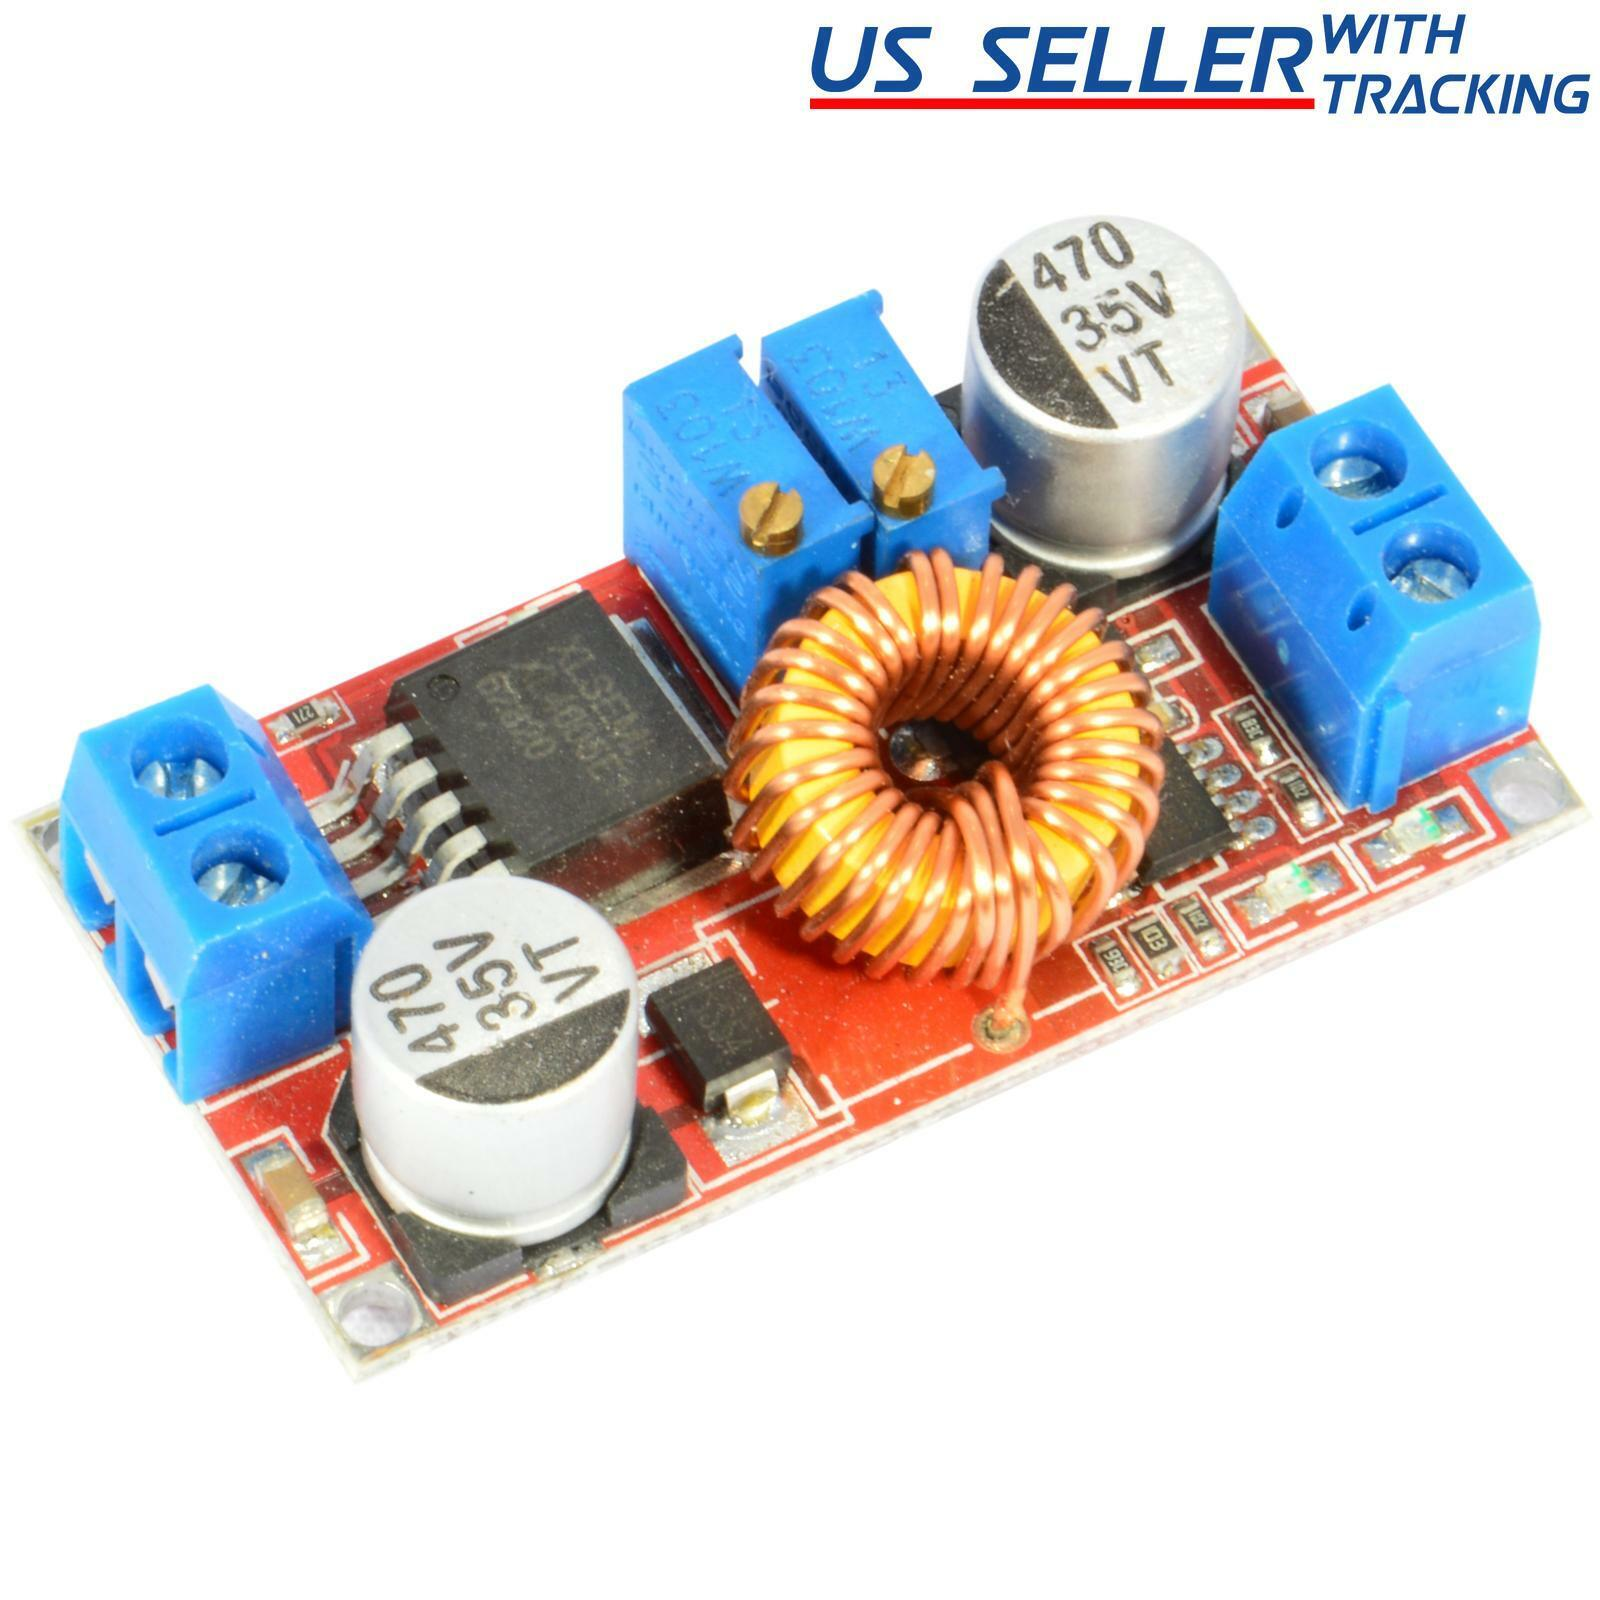 2pcs Xl4005 5a Dc Buck Step Down Voltage Converter Constant Current To Power Module 1 Of 2free Shipping See More